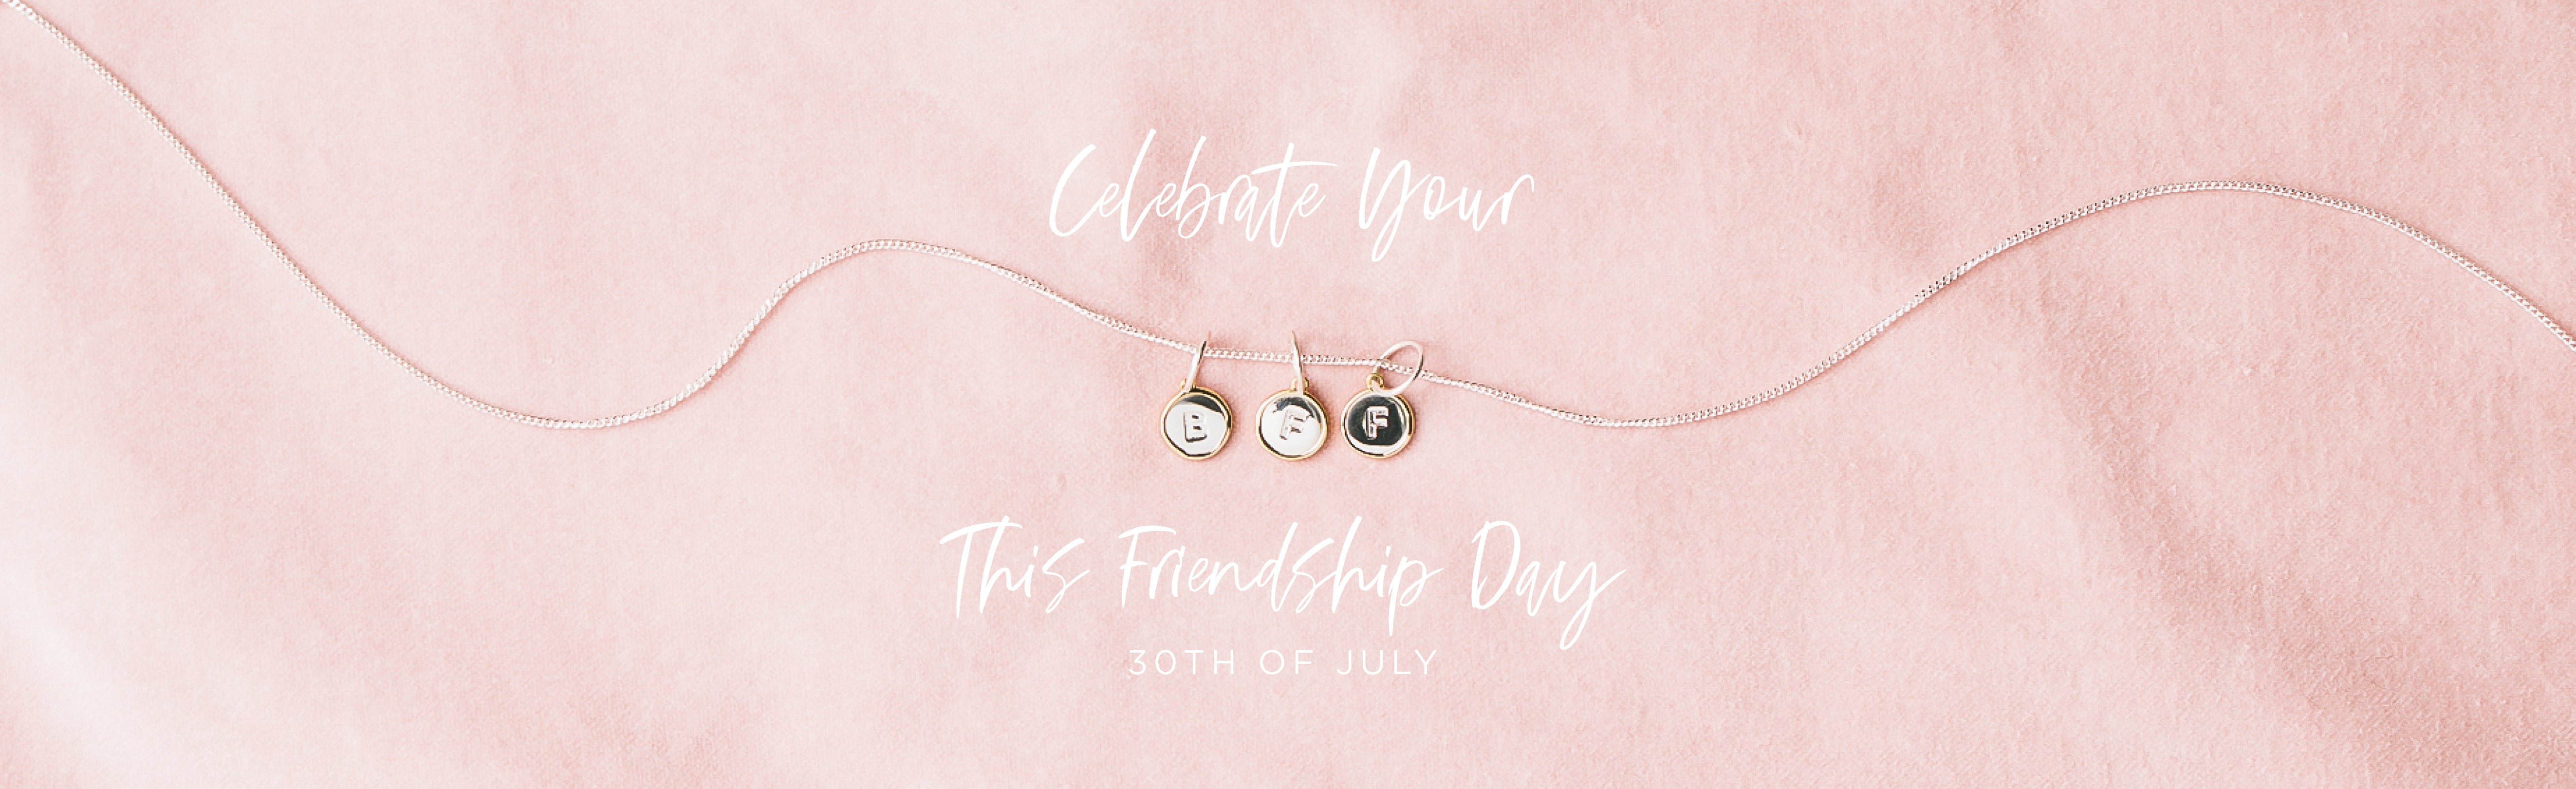 Firendship-Day-Collection-Banner